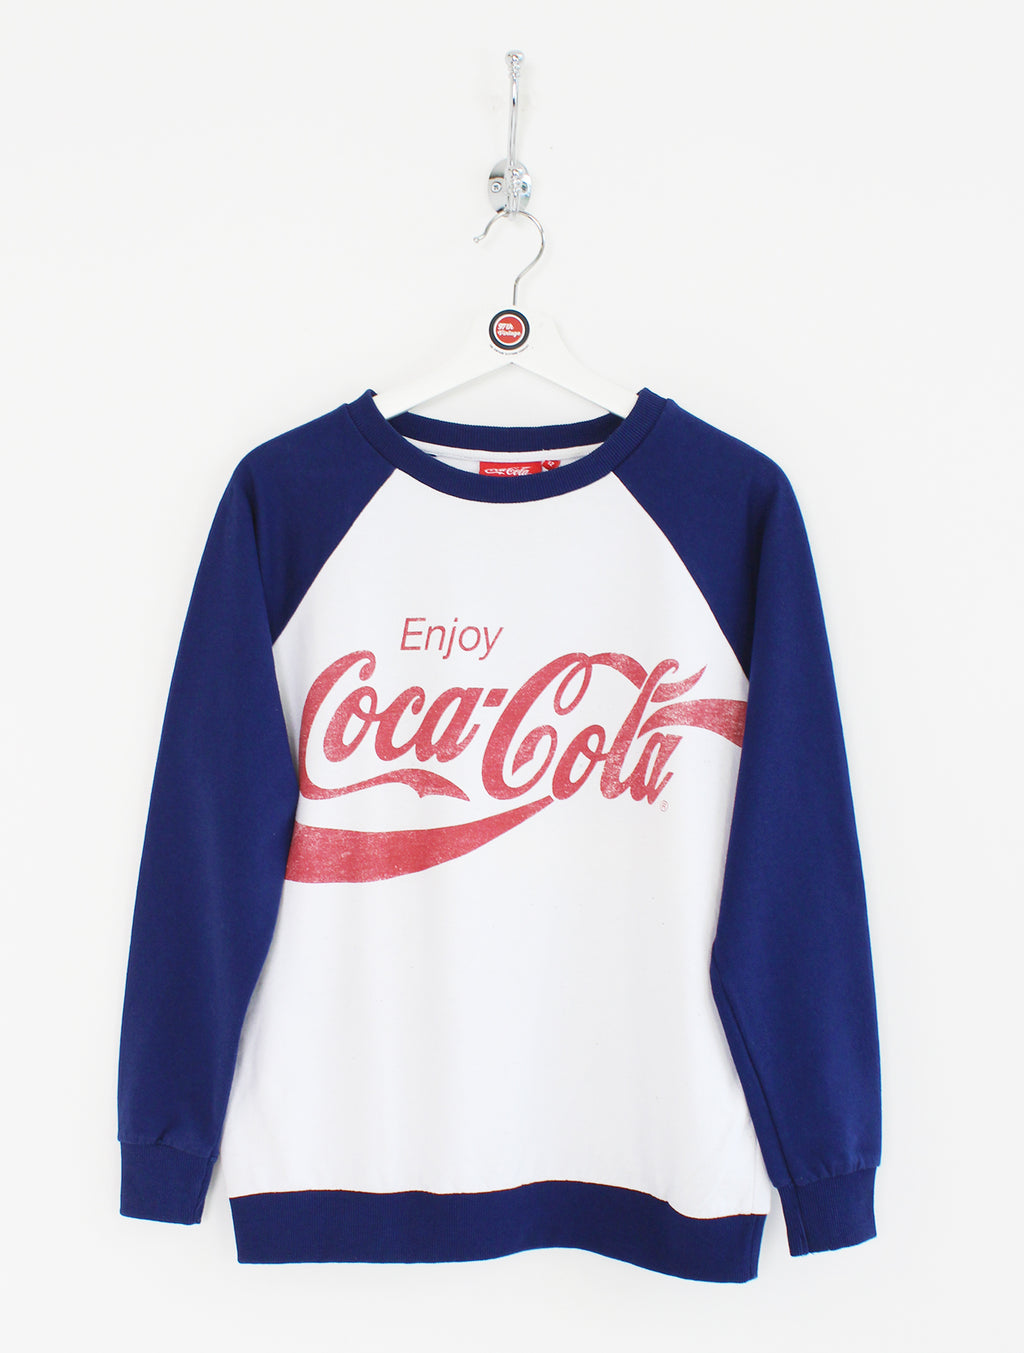 Women's Coco Cola Sweatshirt (M)